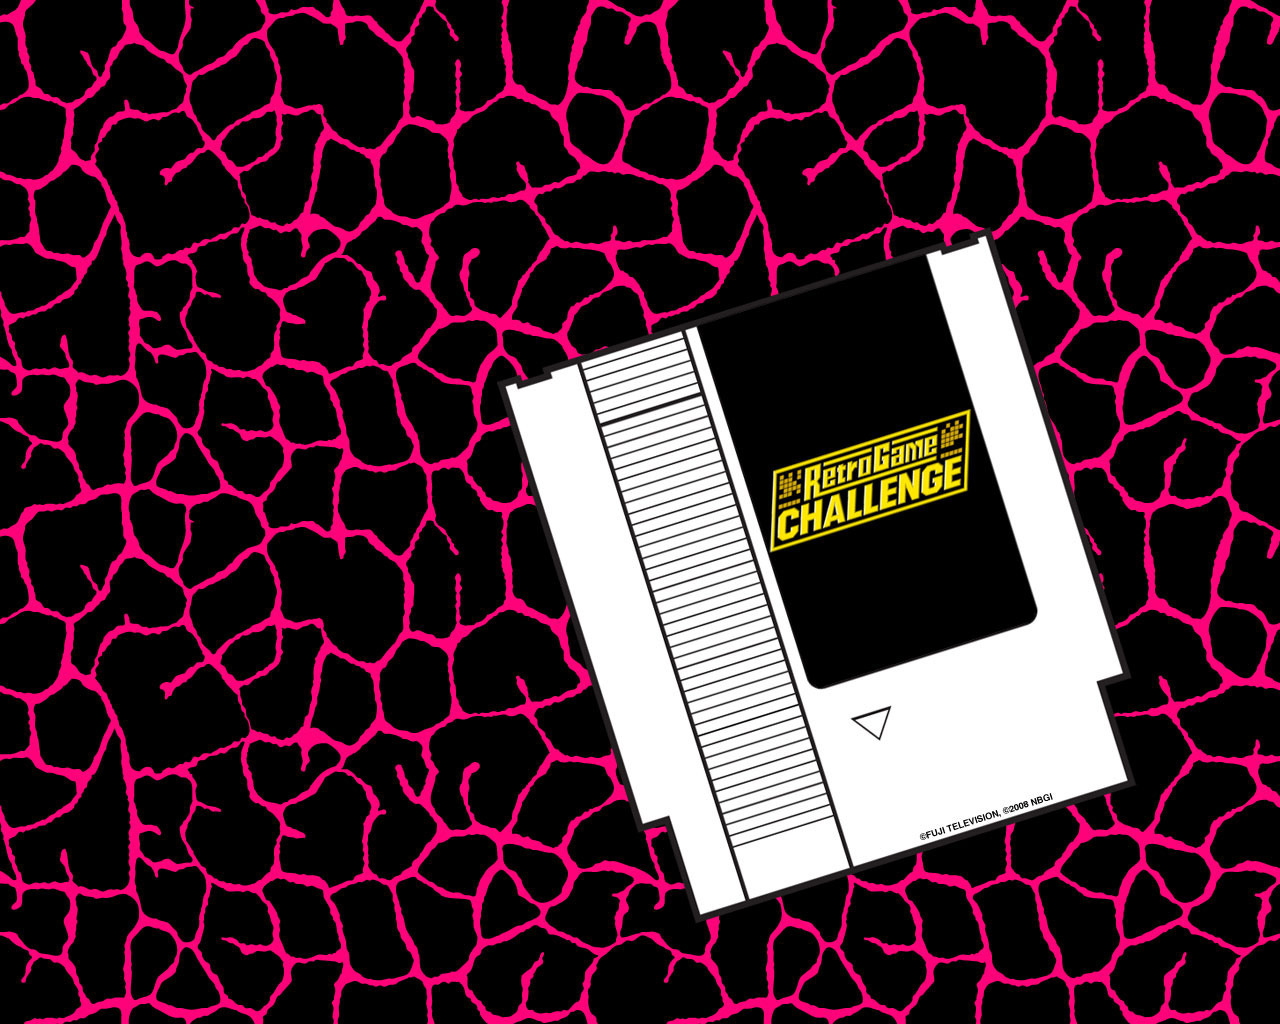 Retro Game Challenge Wallpaper Gallery   Best Game Wallpapers 1280x1024